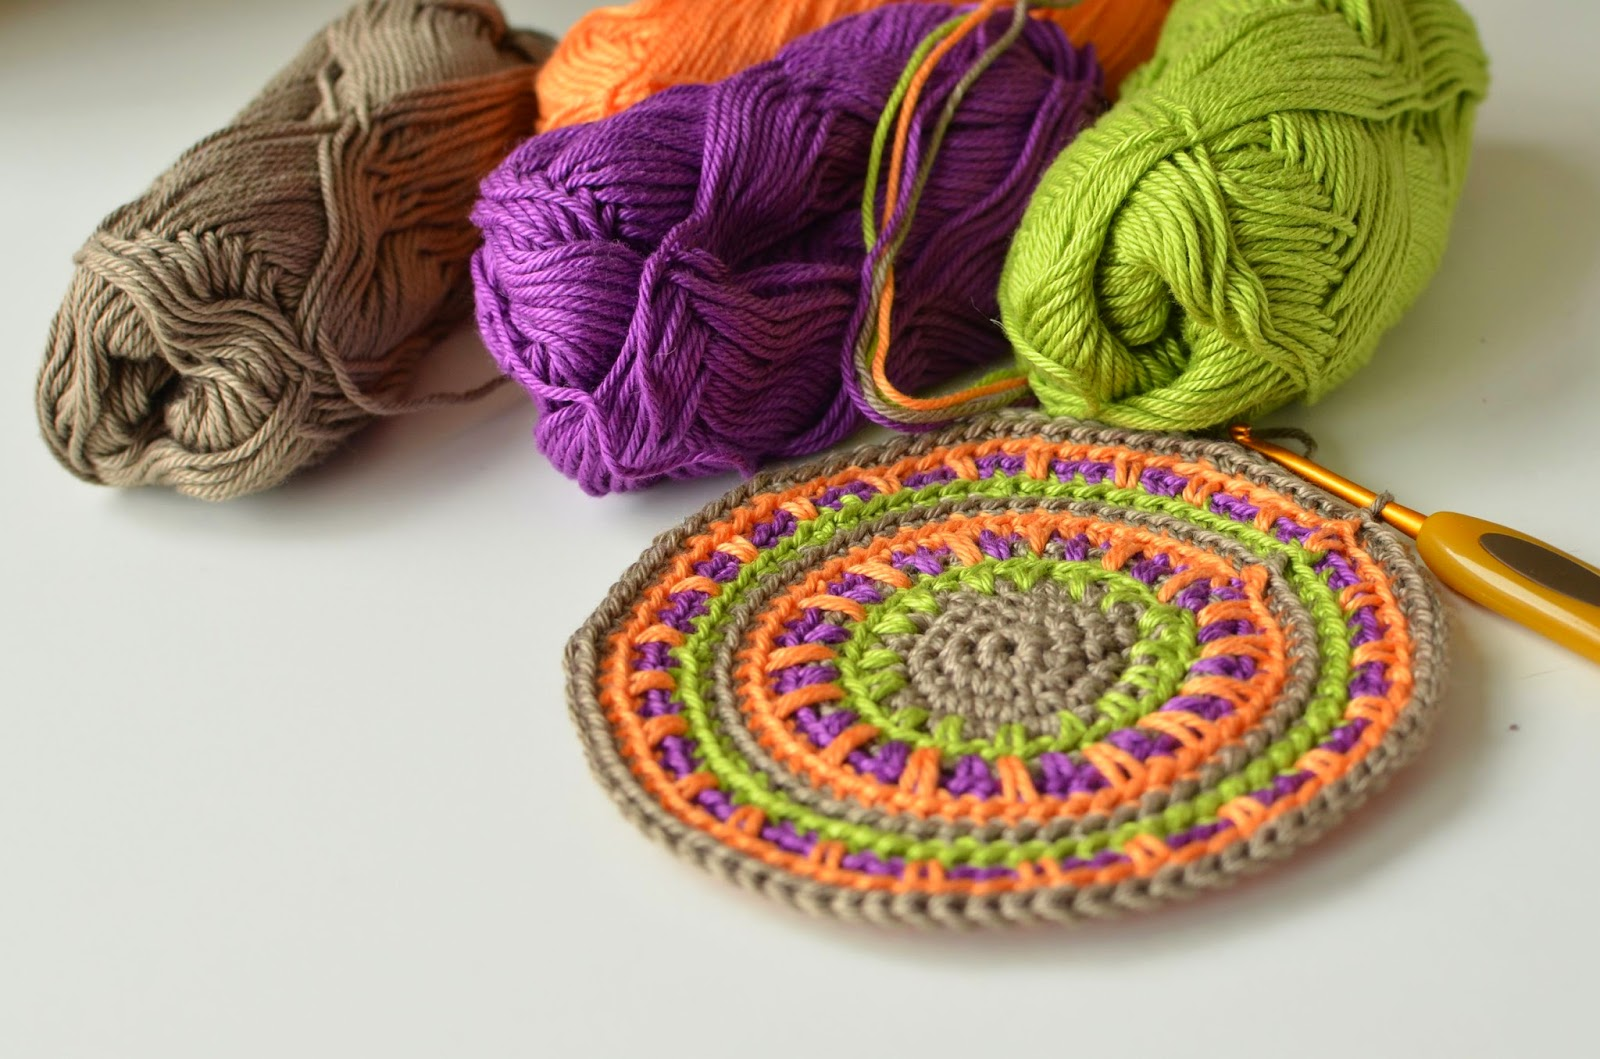 Anatomy Of Spike Stitch Or How To Crochet A Simple Coaster Without A